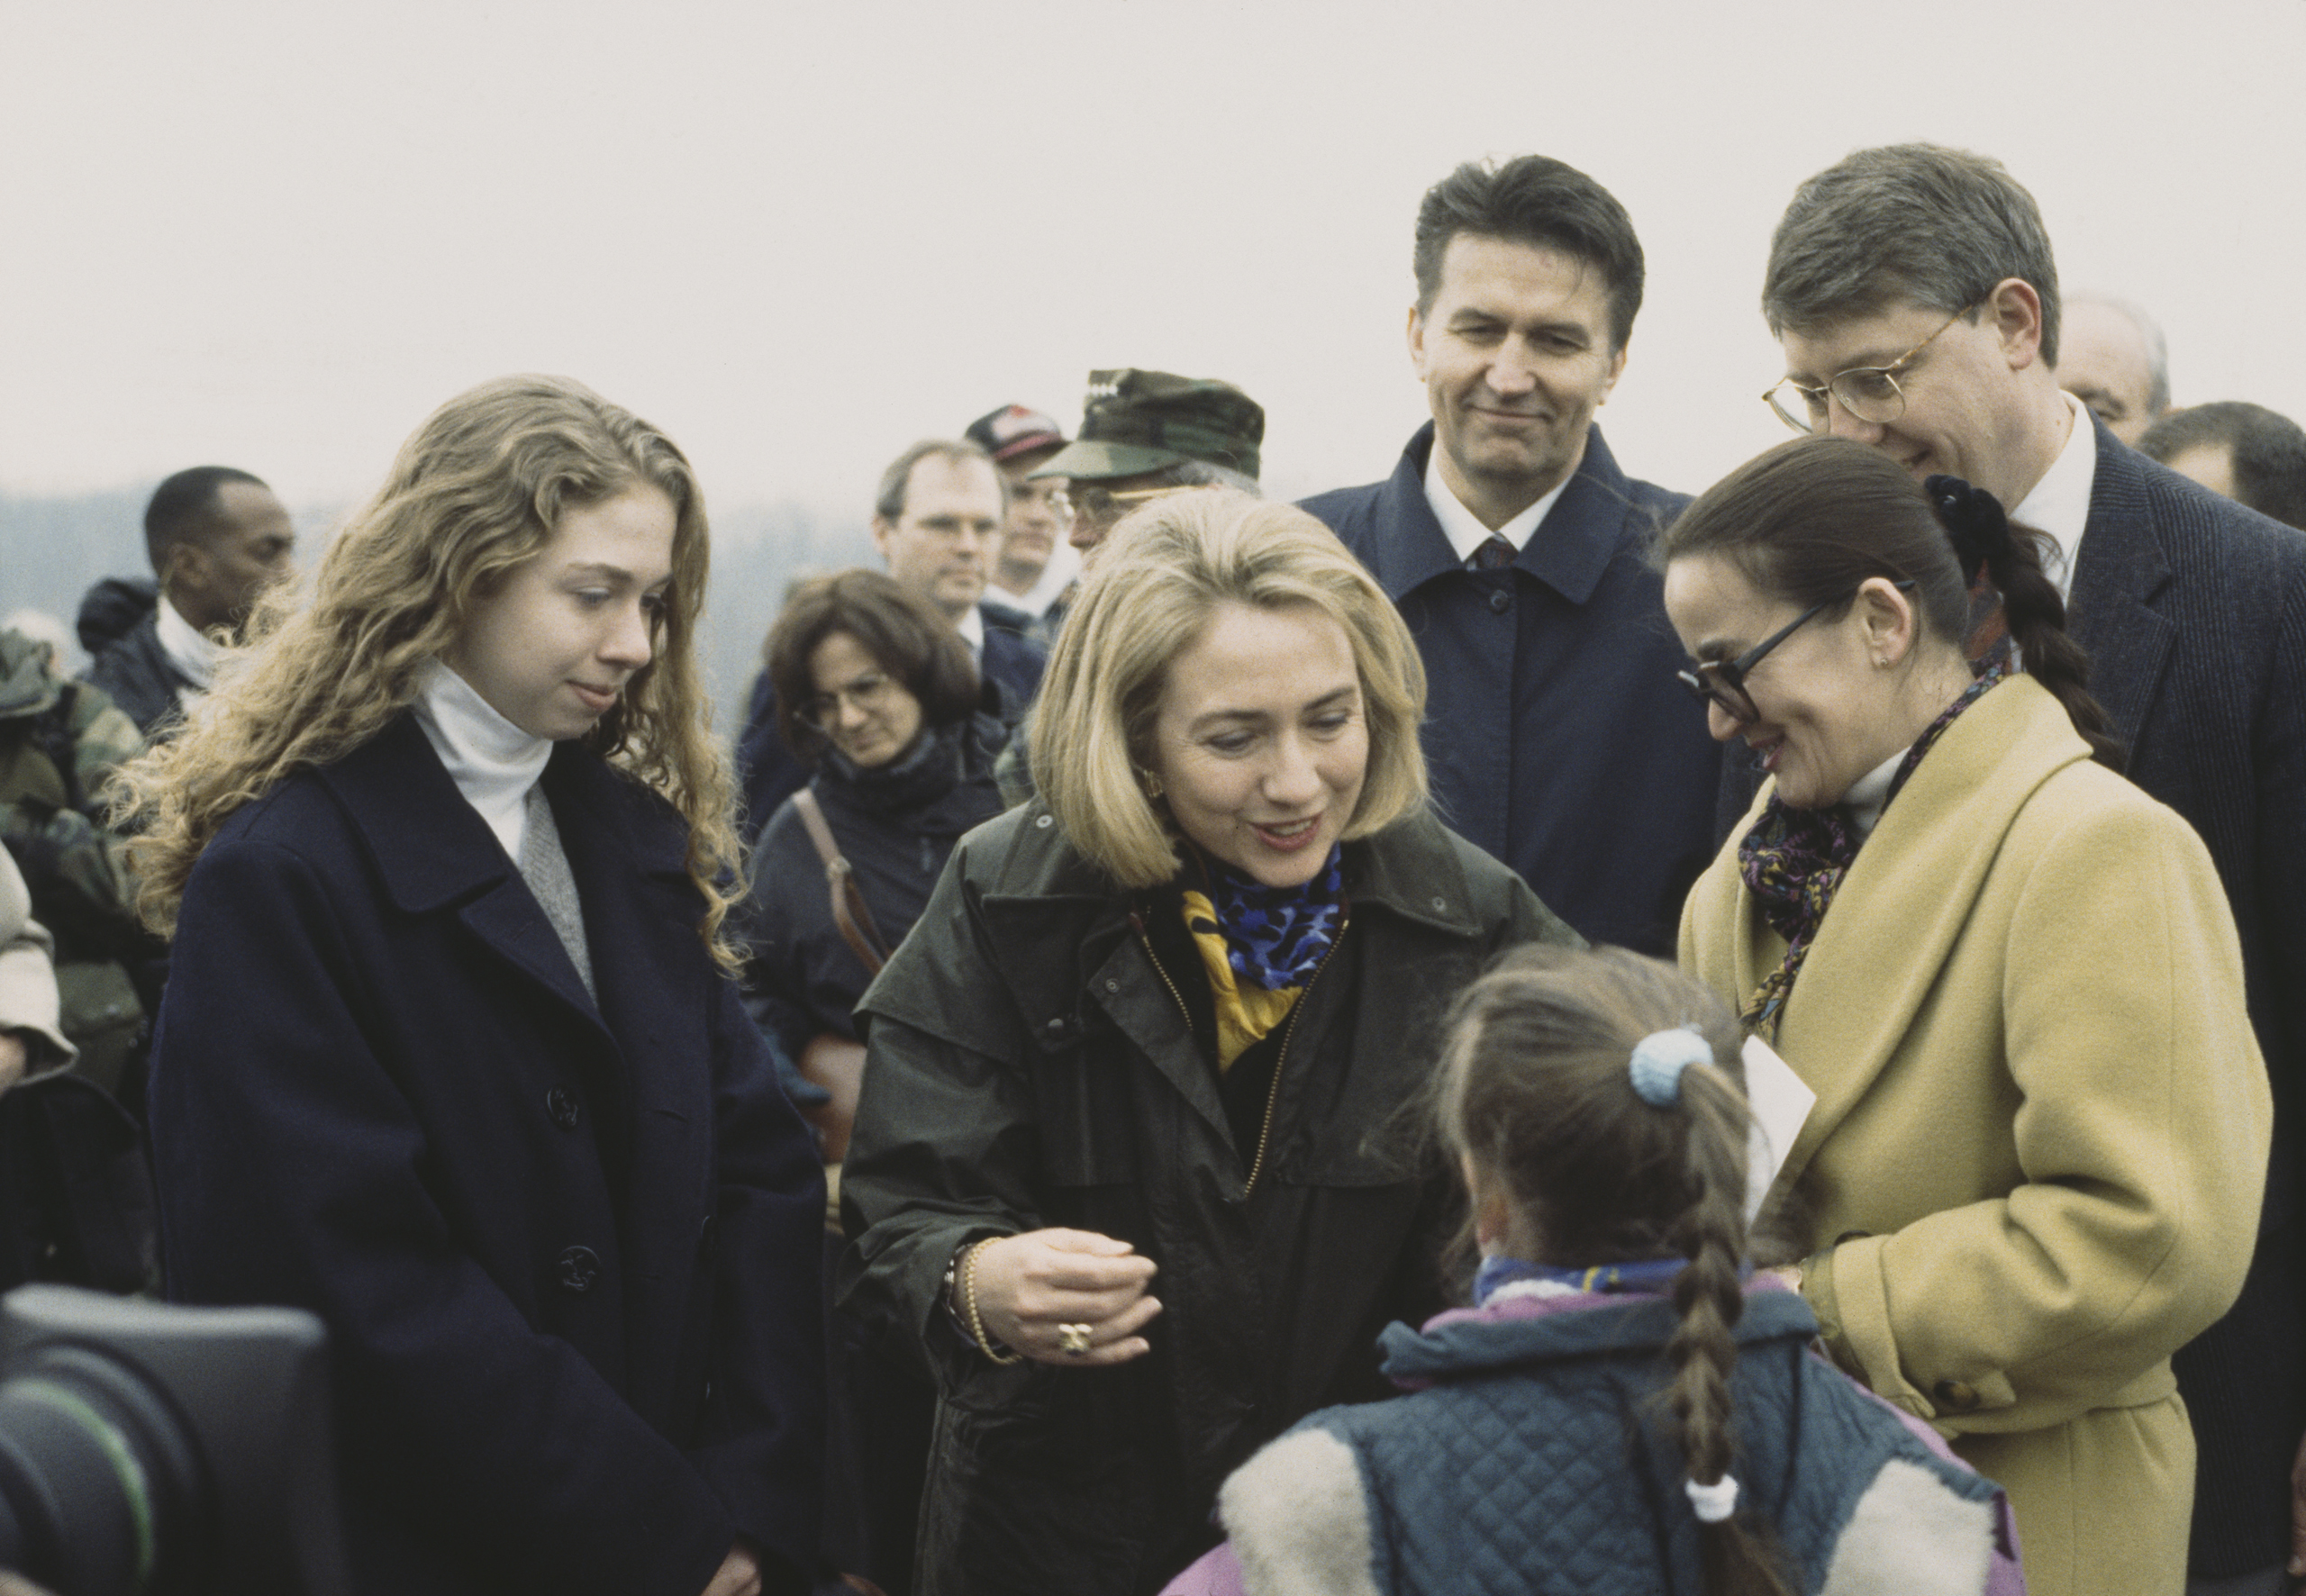 Hillary Clinton and her daughter, Chelsea greet the crowd on a visit to U.S. troops at Tuzla Air Base, Bosnia and Herzegovina, on March 25, 1996March 1996.